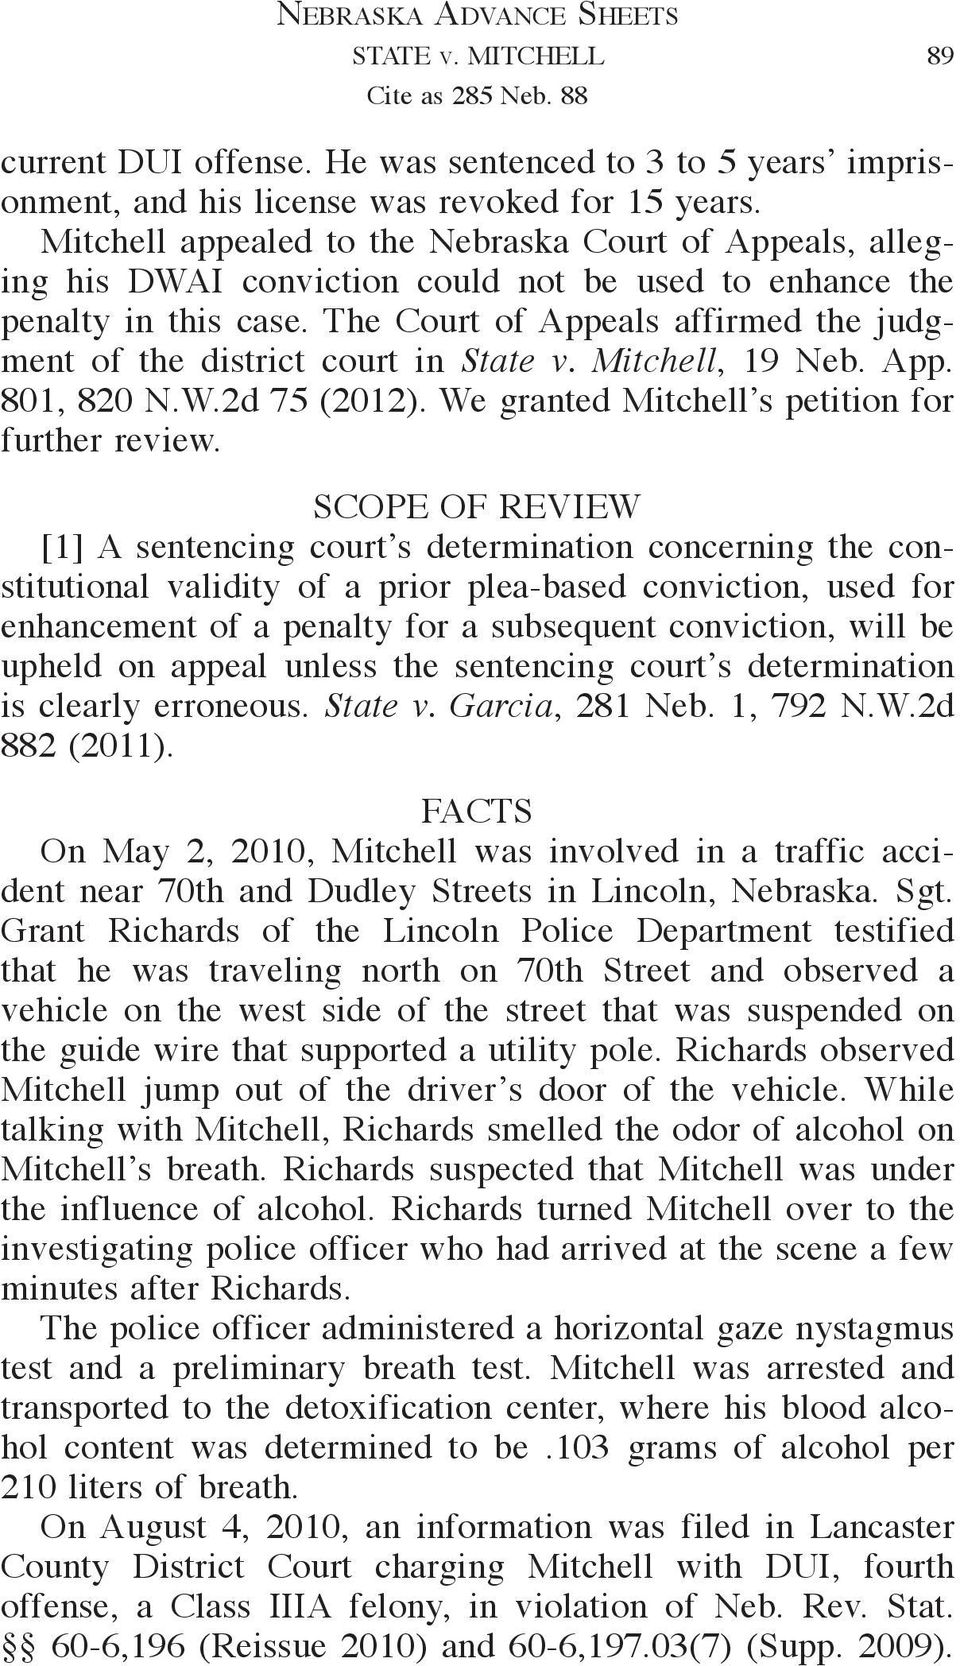 The Court of Appeals affirmed the judgment of the district court in State v. Mitchell, 19 Neb. App. 801, 820 N.W.2d 75 (2012). We granted Mitchell s petition for further review.